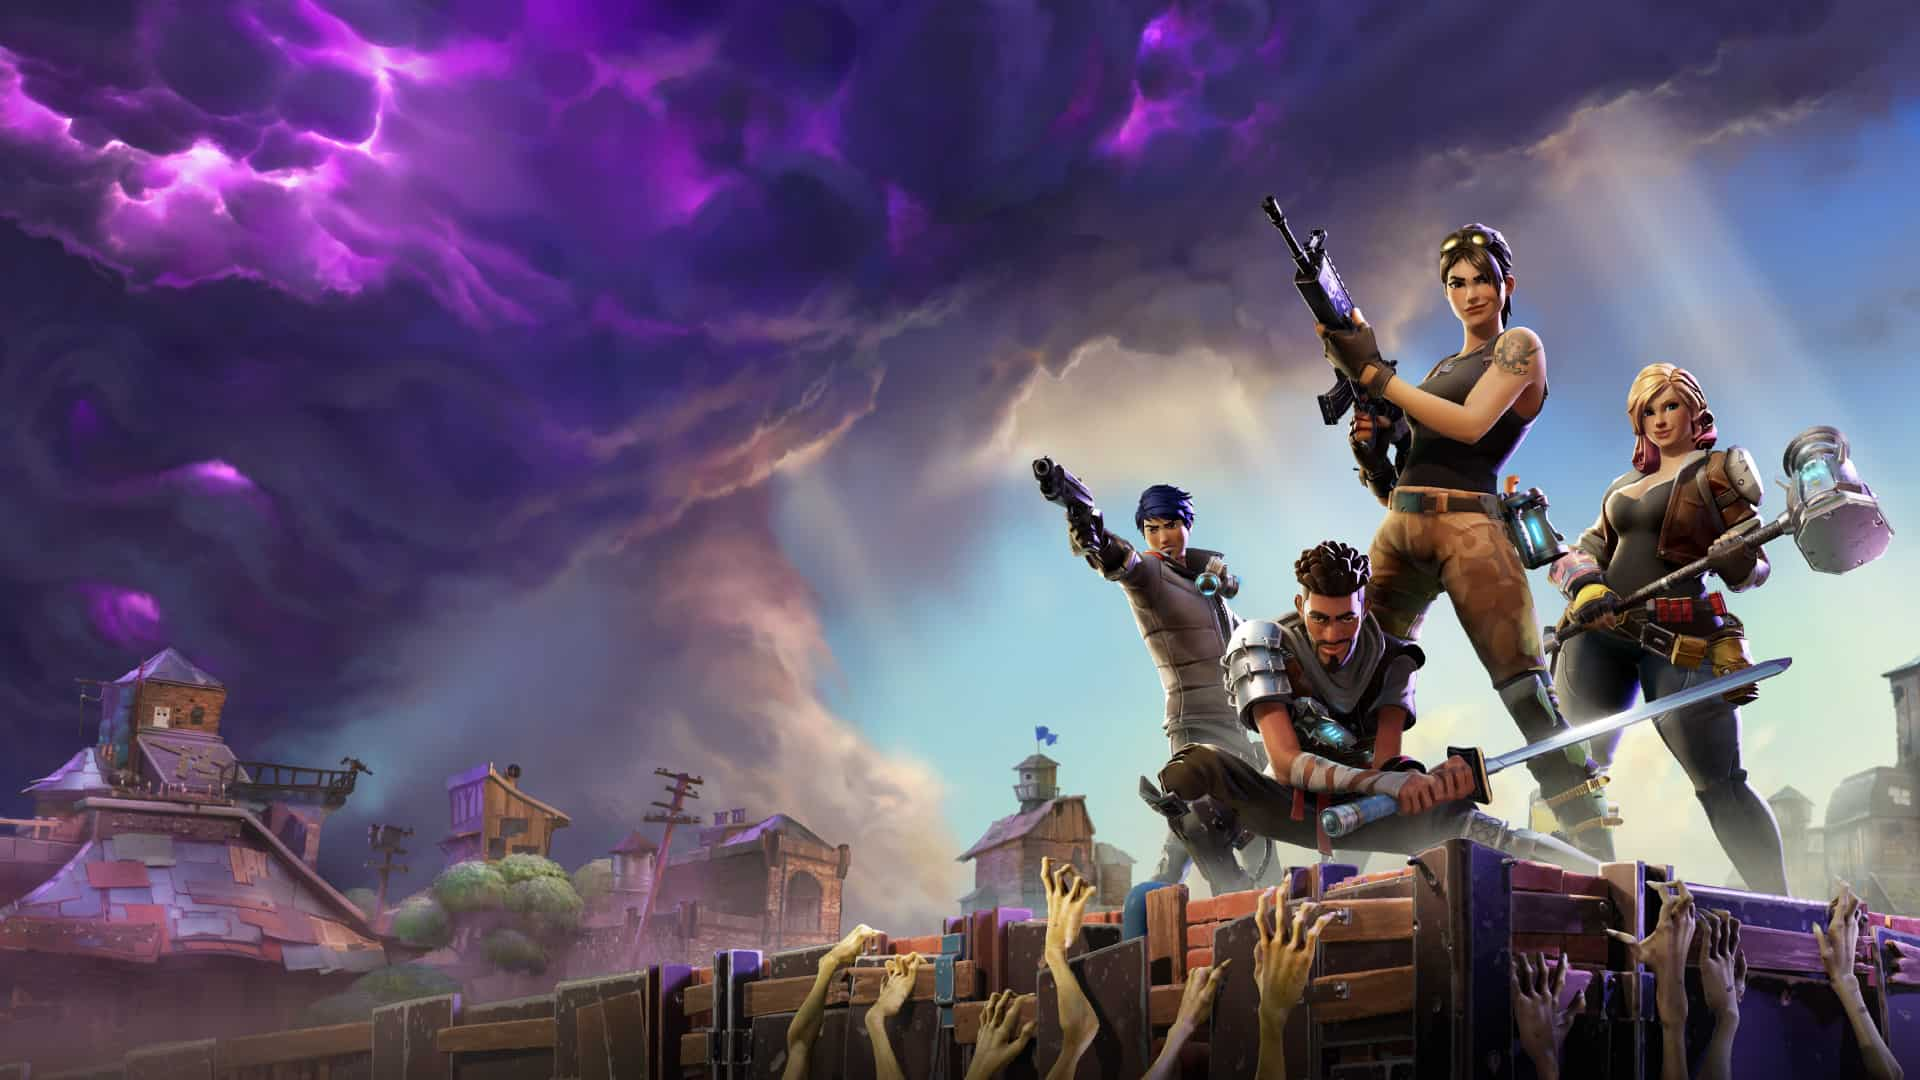 The Fortnite Light Machine Gun Is Coming to Battle Royale